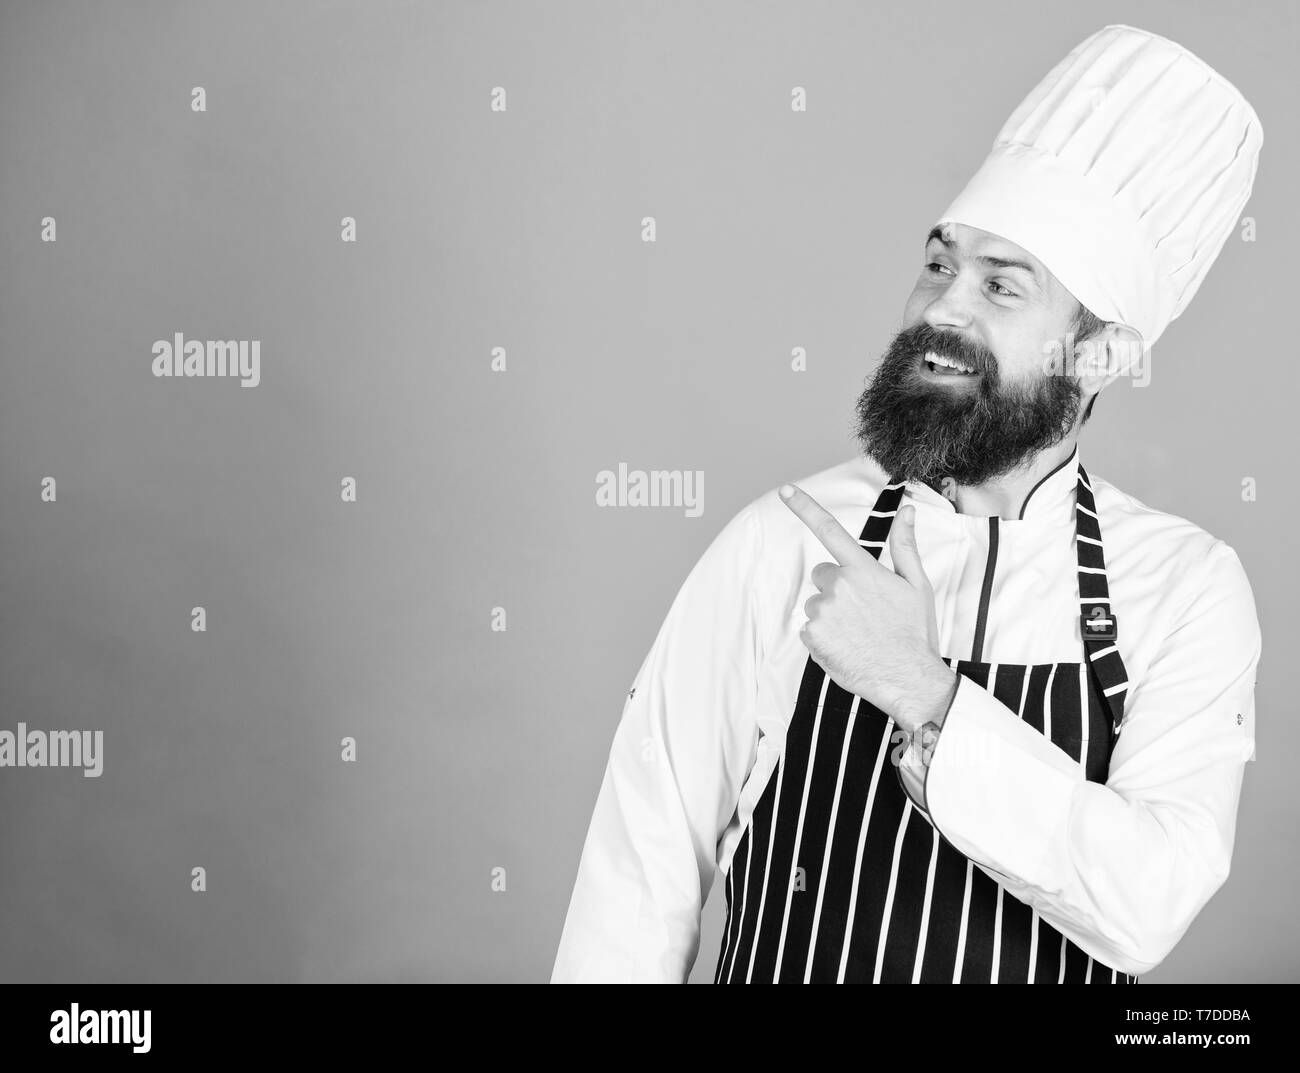 He is a champion in the kitchen. Perfect chef with neat look. Professional chef in cook uniform. Happy bearded man in apron. copy space. restaurant cuisine. Culinary expert. best chef ever. - Stock Image